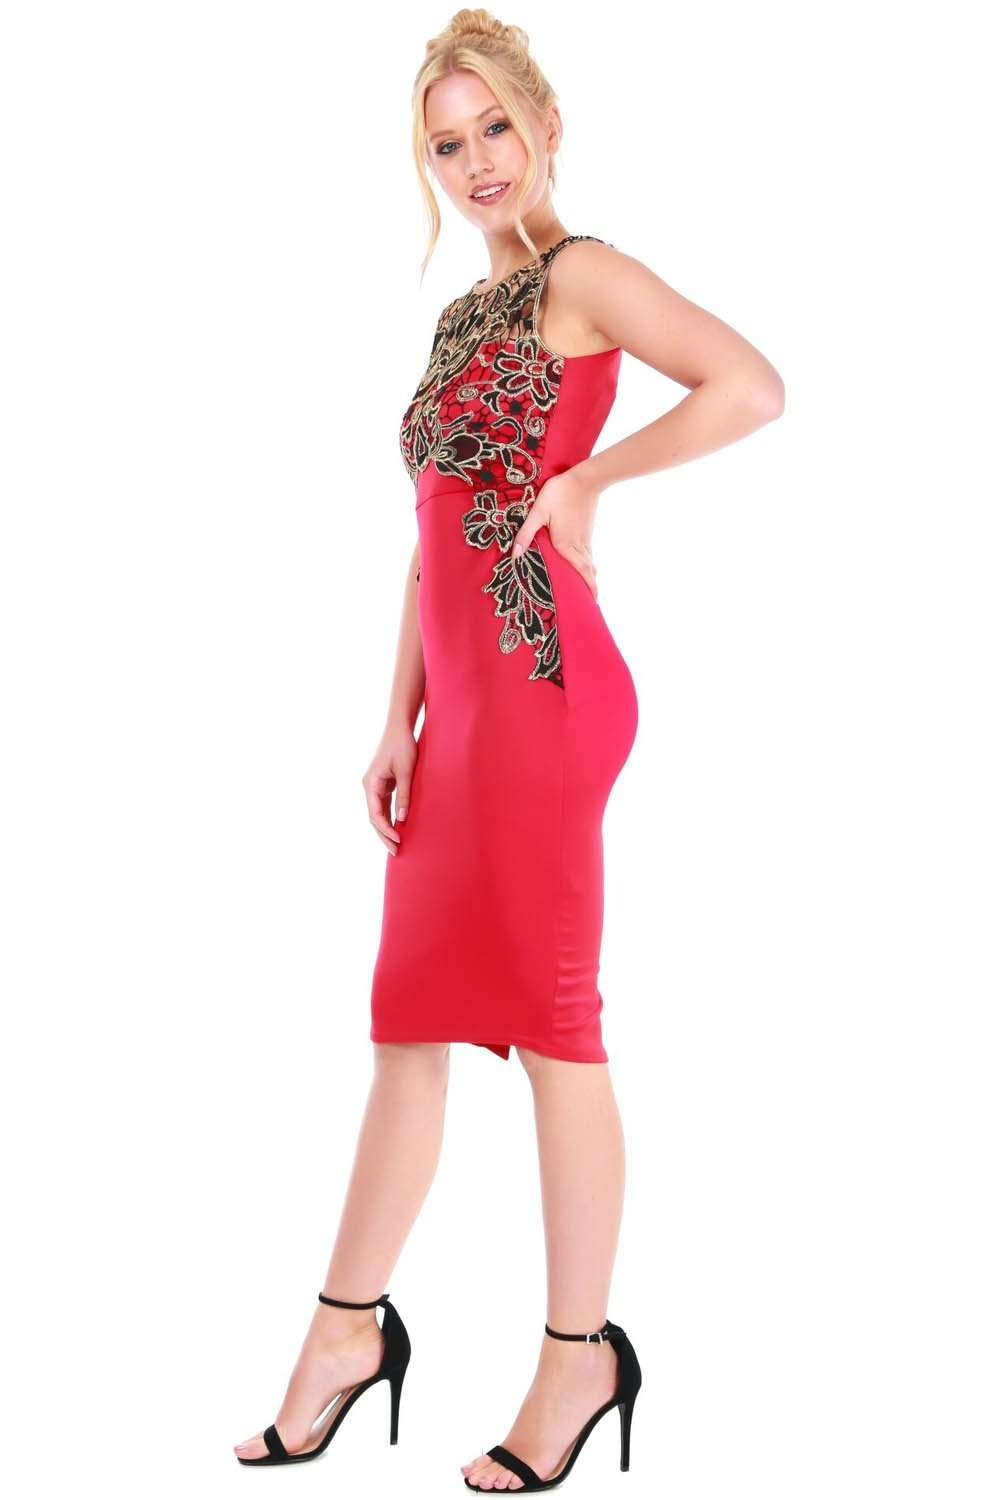 Gold Floral Lace Trim Red Midi Bodycon Dress - bejealous-com